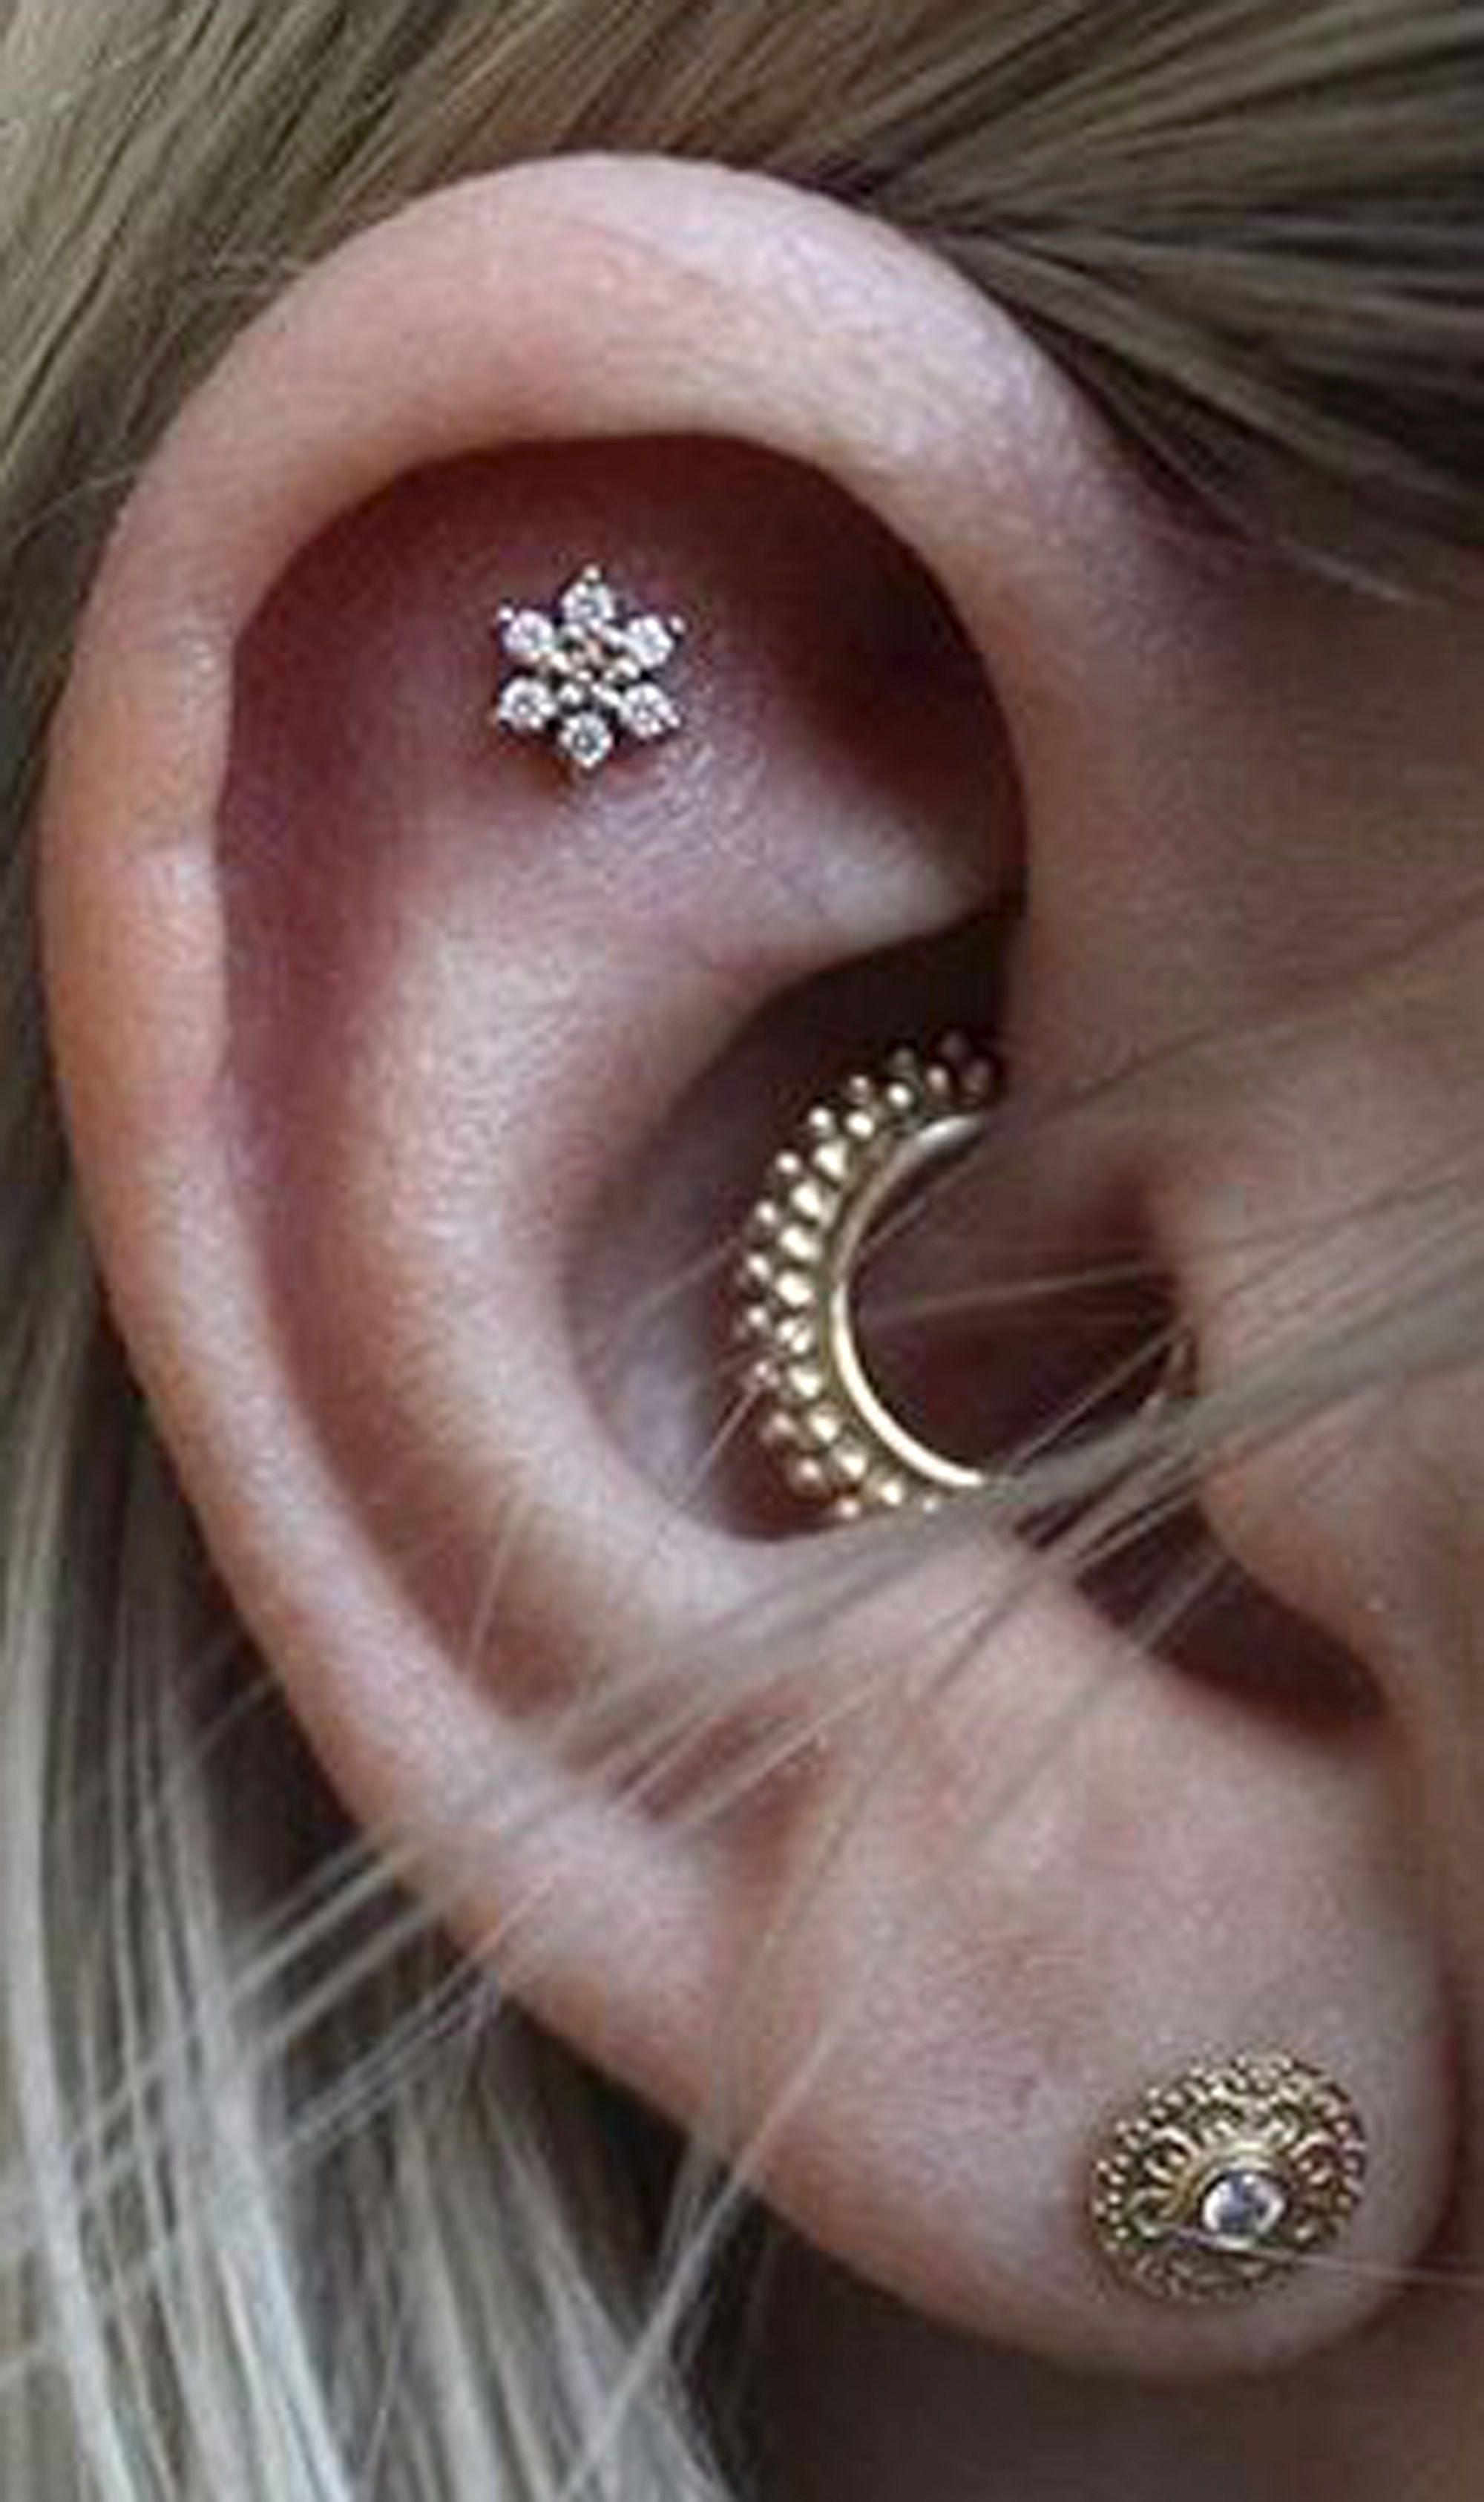 Cute Ear Piercing Ideas For Women Flower Cartilage Earring Stud Gold Daith Hoop